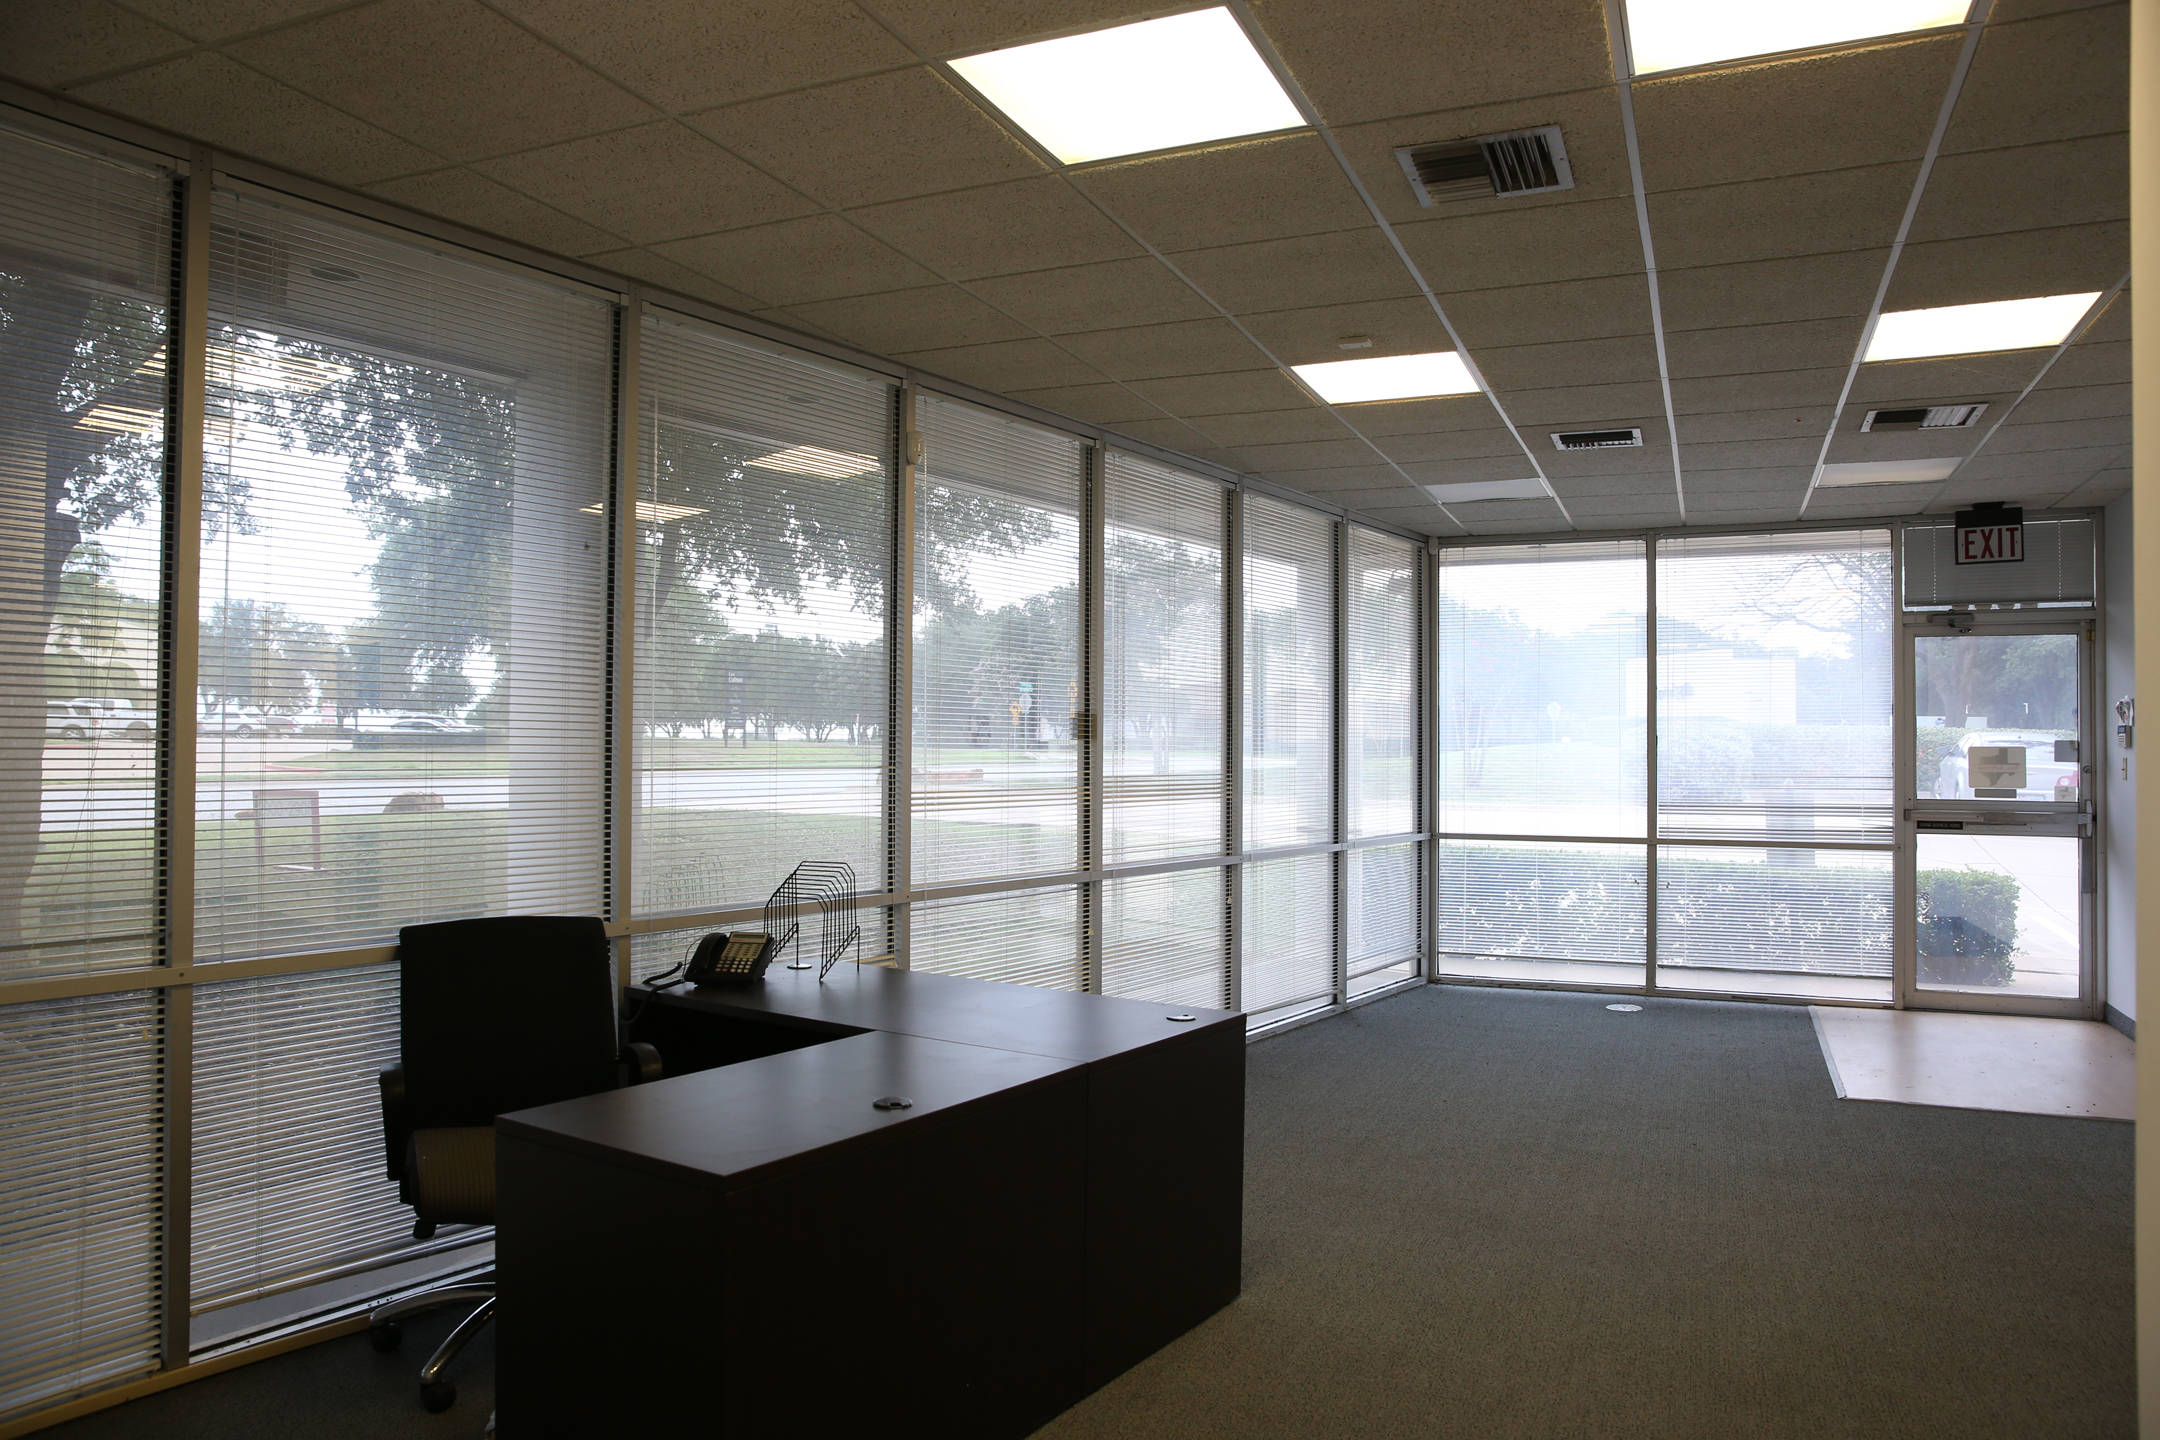 Laughlin Commercial Realty Group 2900 Story Road West Irving Texas 75038 Office Warehouse